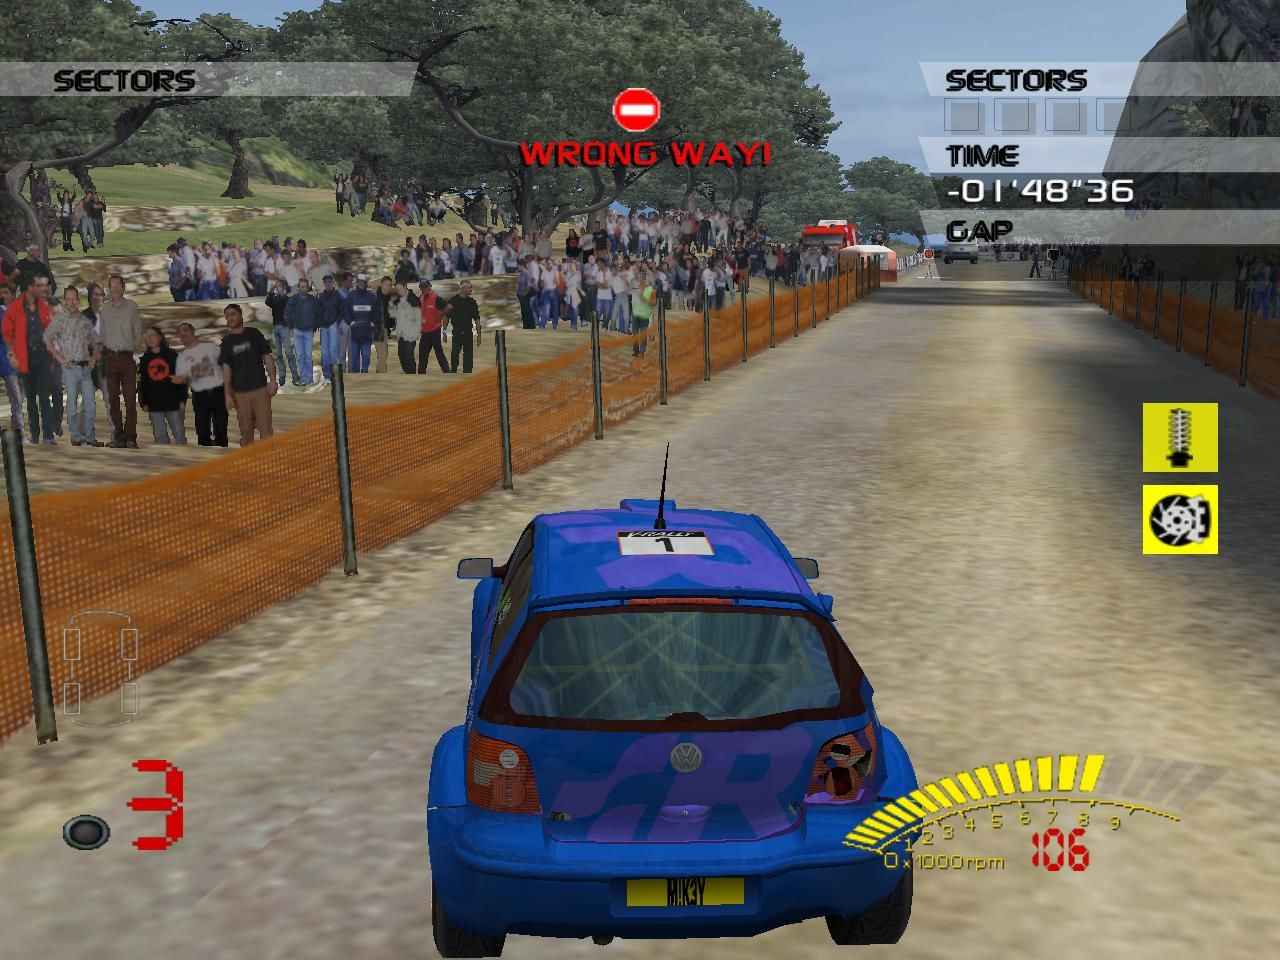 http://www.mobygames.com/images/shots/l/421737-v-rally-3-windows-screenshot-flat-visitors-s.jpg